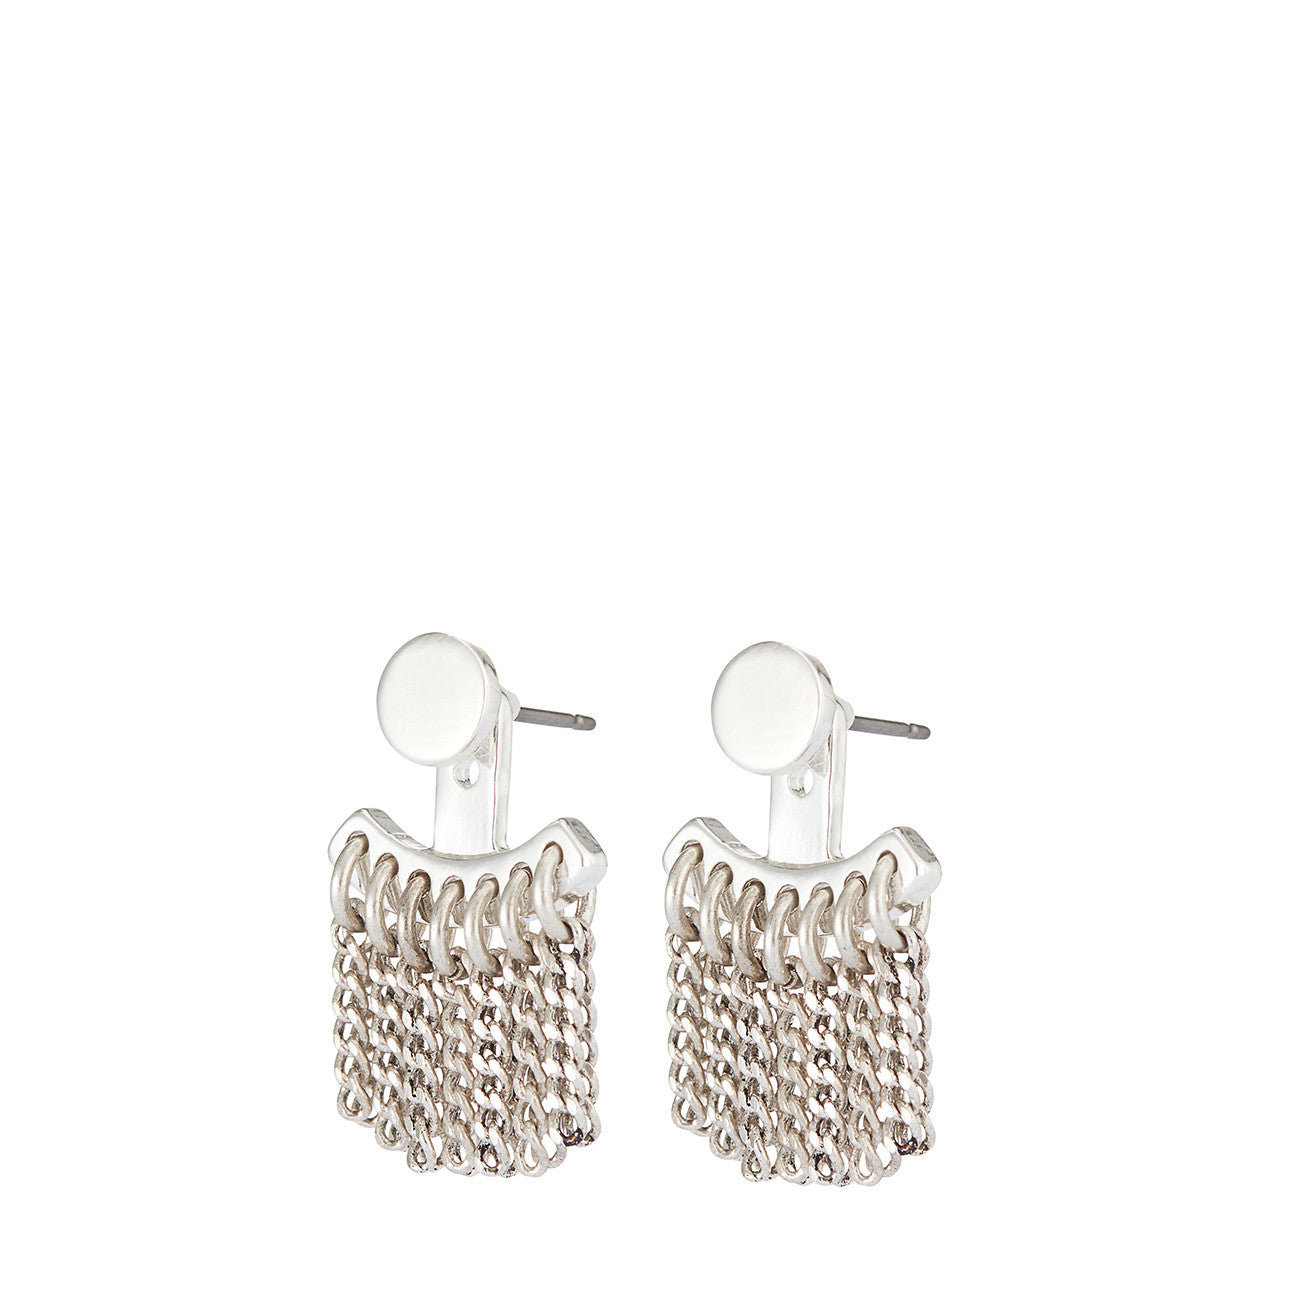 Collins Ave. Ear Jackets by Jenny Bird in High Polish Silver